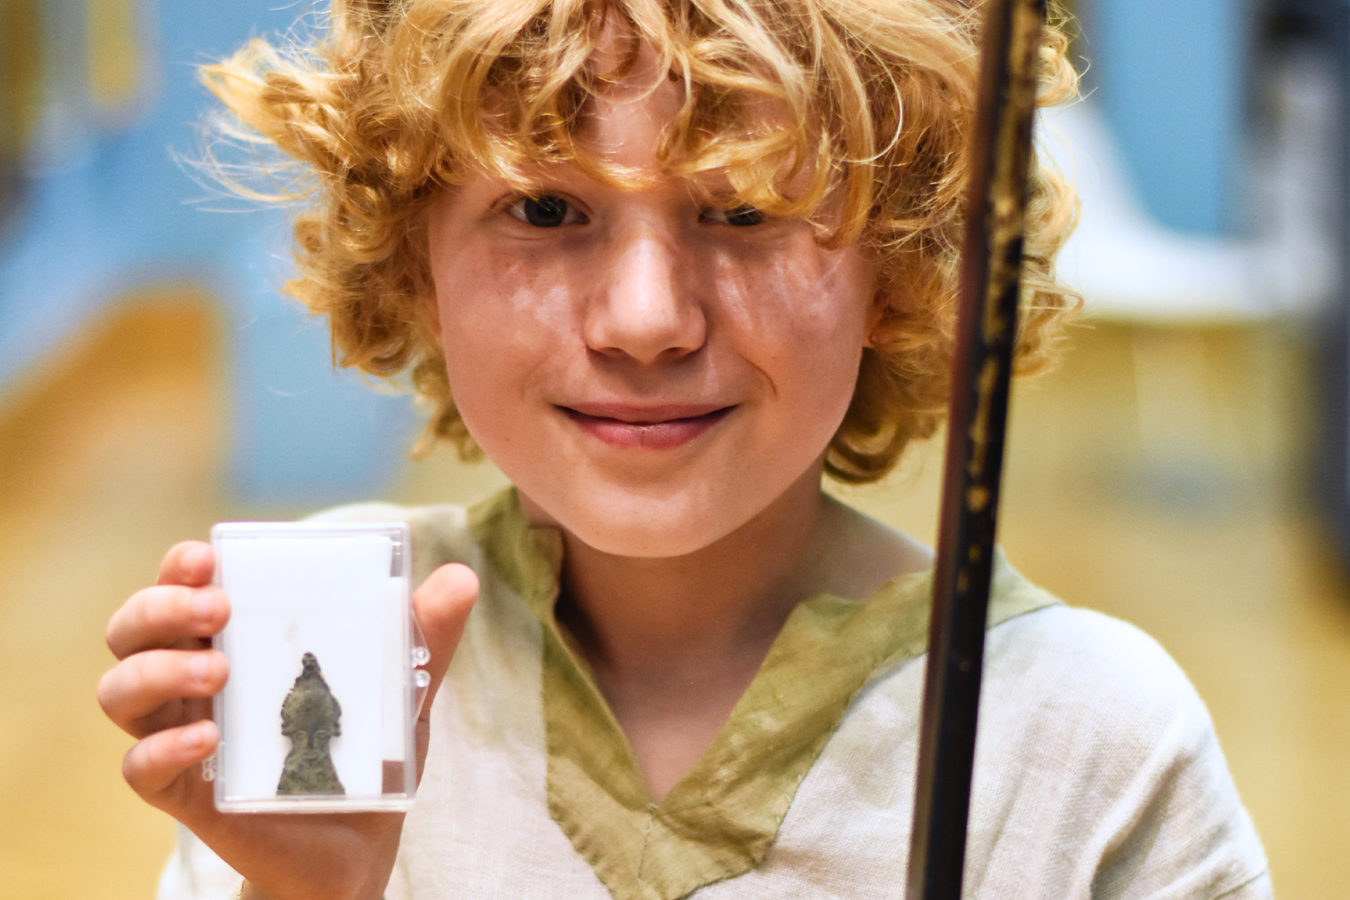 A young boy looking at the camera holding up a picture of a Pilgrim's badge